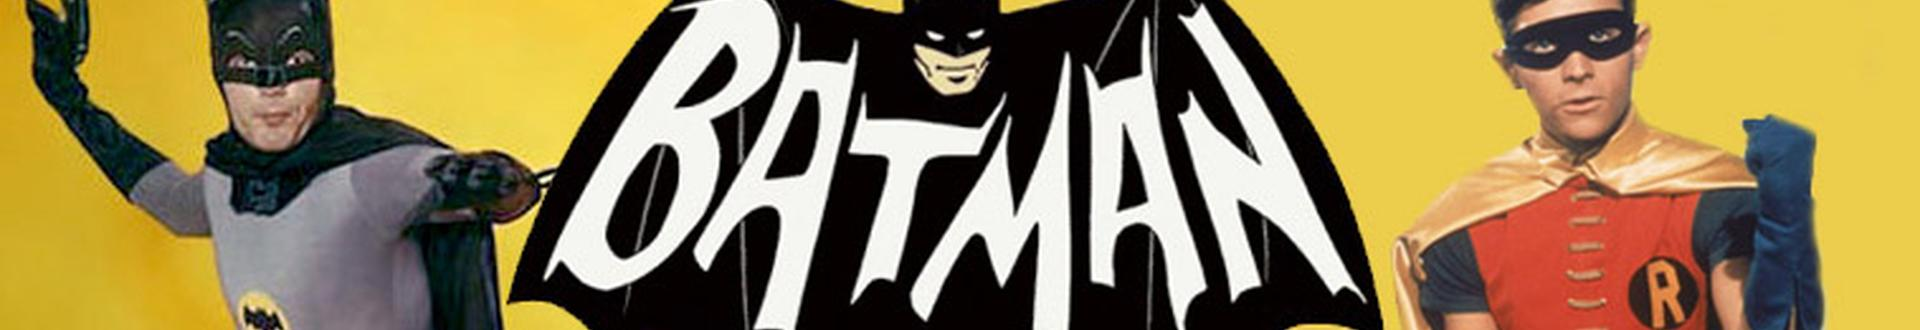 Image illustrative de Batman (1966)